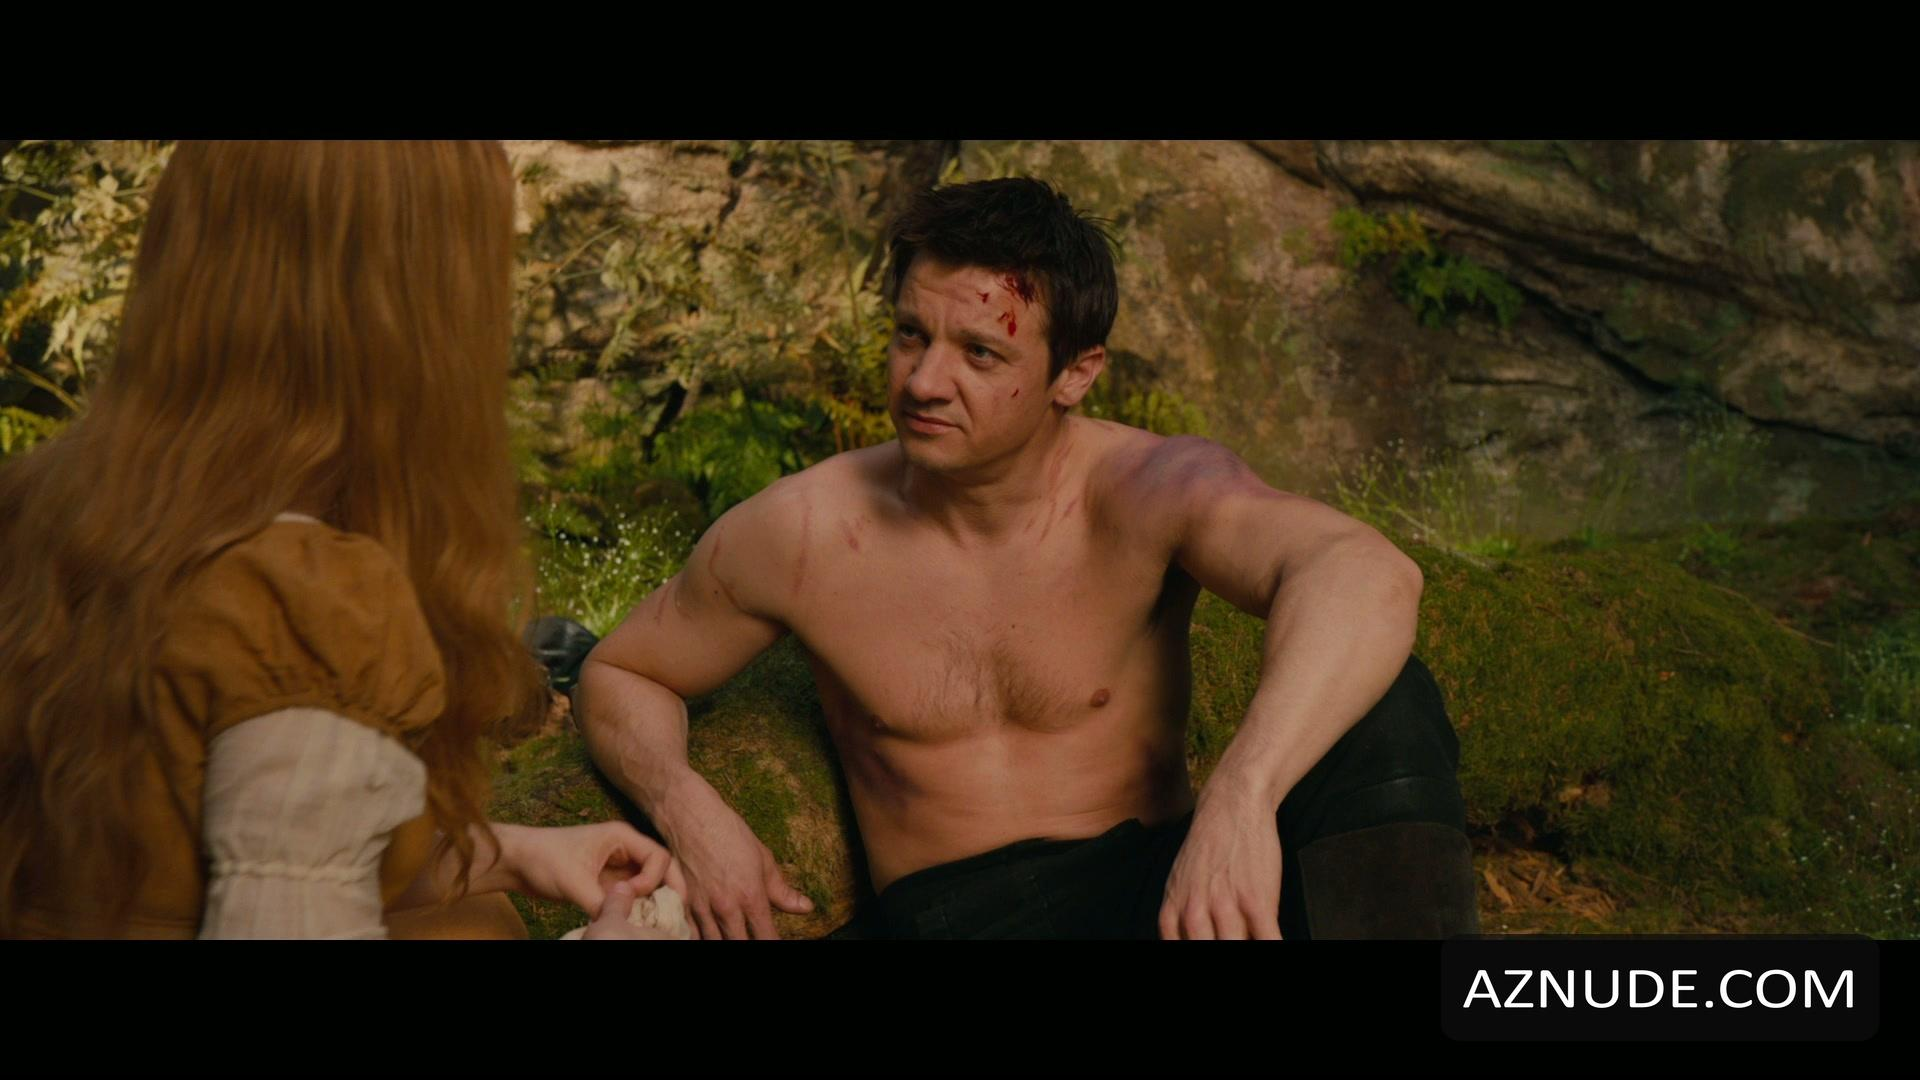 hansel and gretel nudity scene